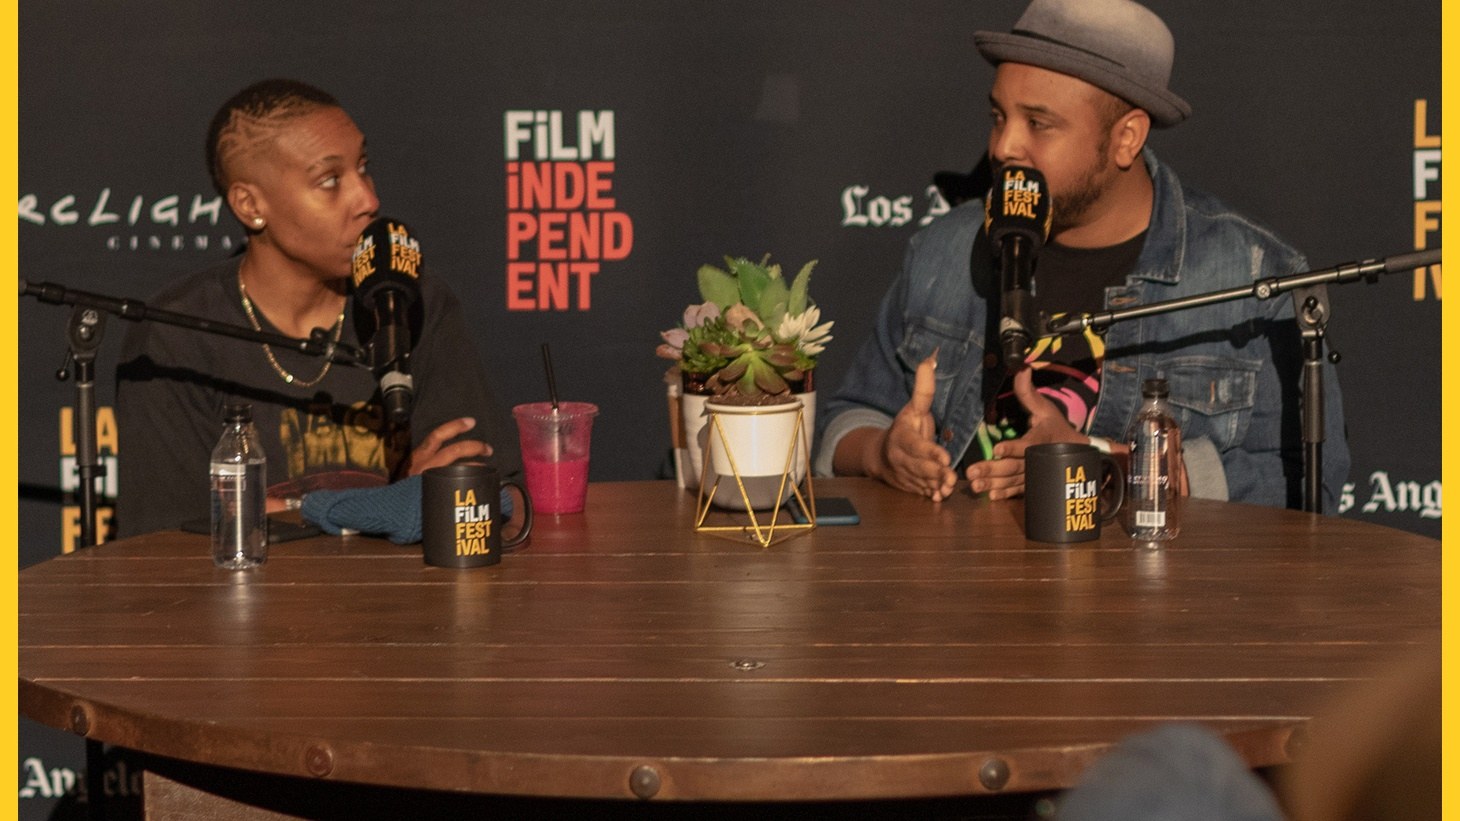 Lena Waithe is an actress and producer, but always a writer first. The Emmy-winner returns to talk about her projects in development (Queen and Slim, Twenties, Them), her creative process, and how she stays hungry.